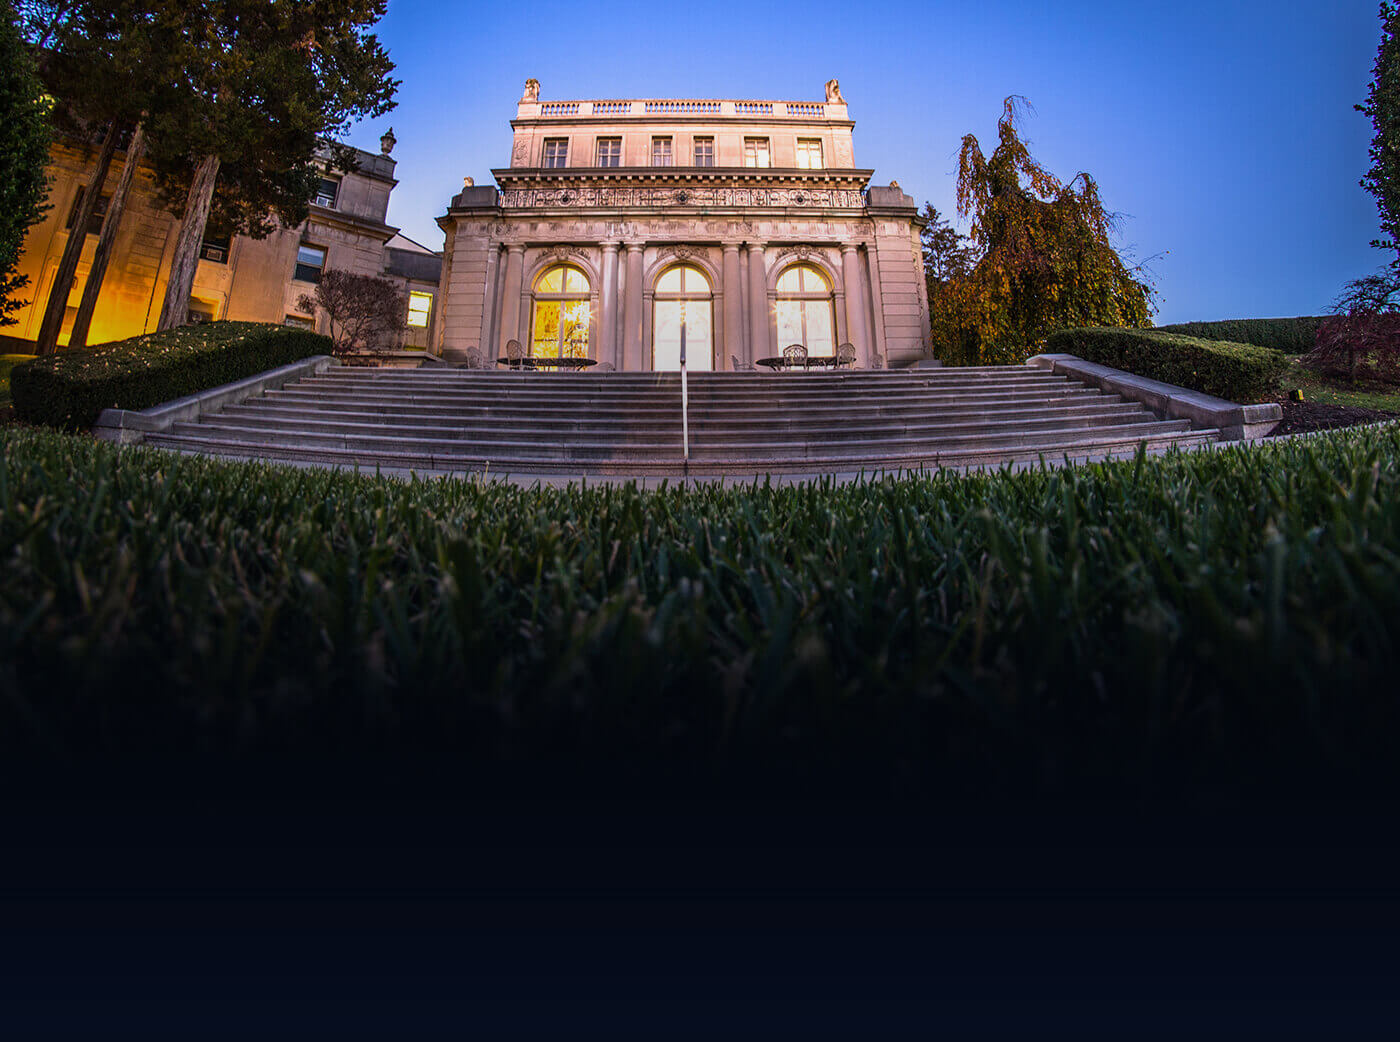 A view of the steps leading up to the historic Great Hall from the Erlanger Gardens with a rich blue sky at sunset